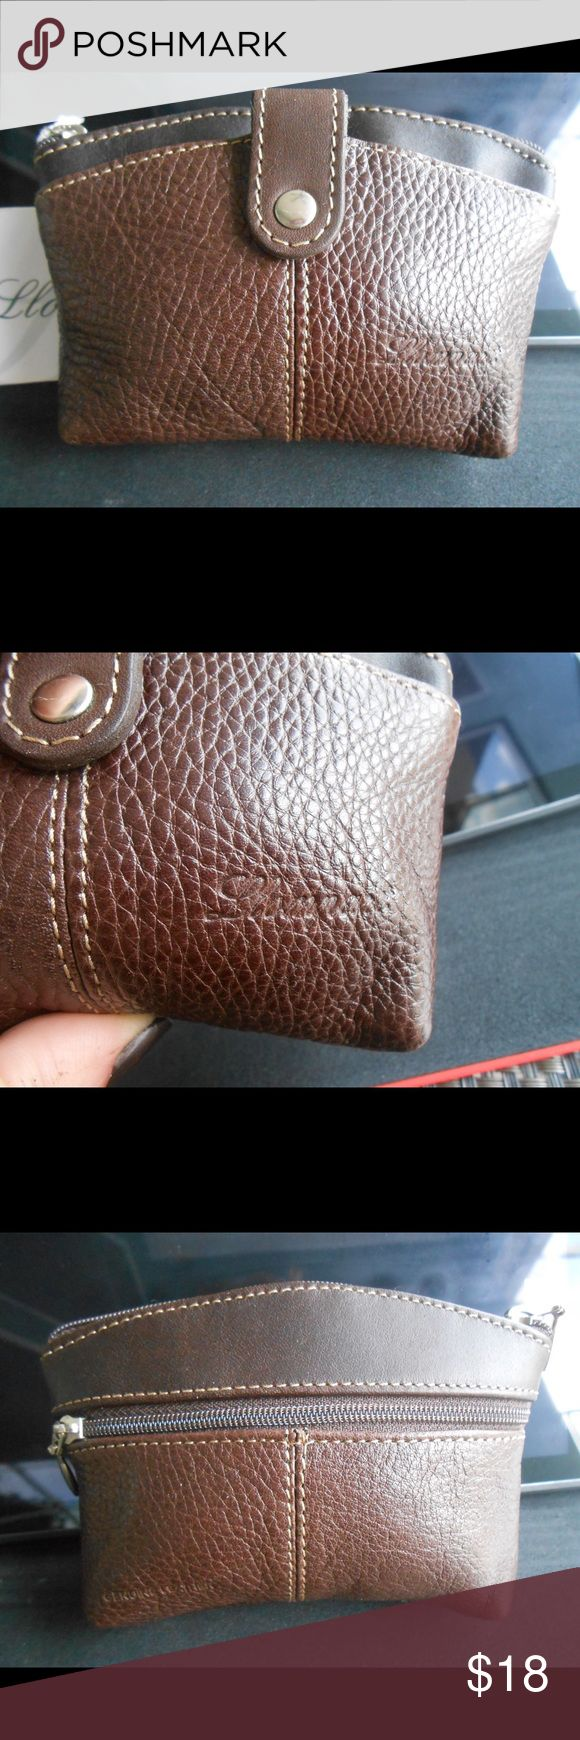 "6"" Genuine Mexican Leather Purse Small Brown textured leather purse measures 4""x 6"" with silver-tone hardware. One pocket with snap closure, center pocket with zipper closure, and rear pocket with zipper closure. Brand embossed (as shown). All lined, never used, and NWT. Llompart Bags Wallets"